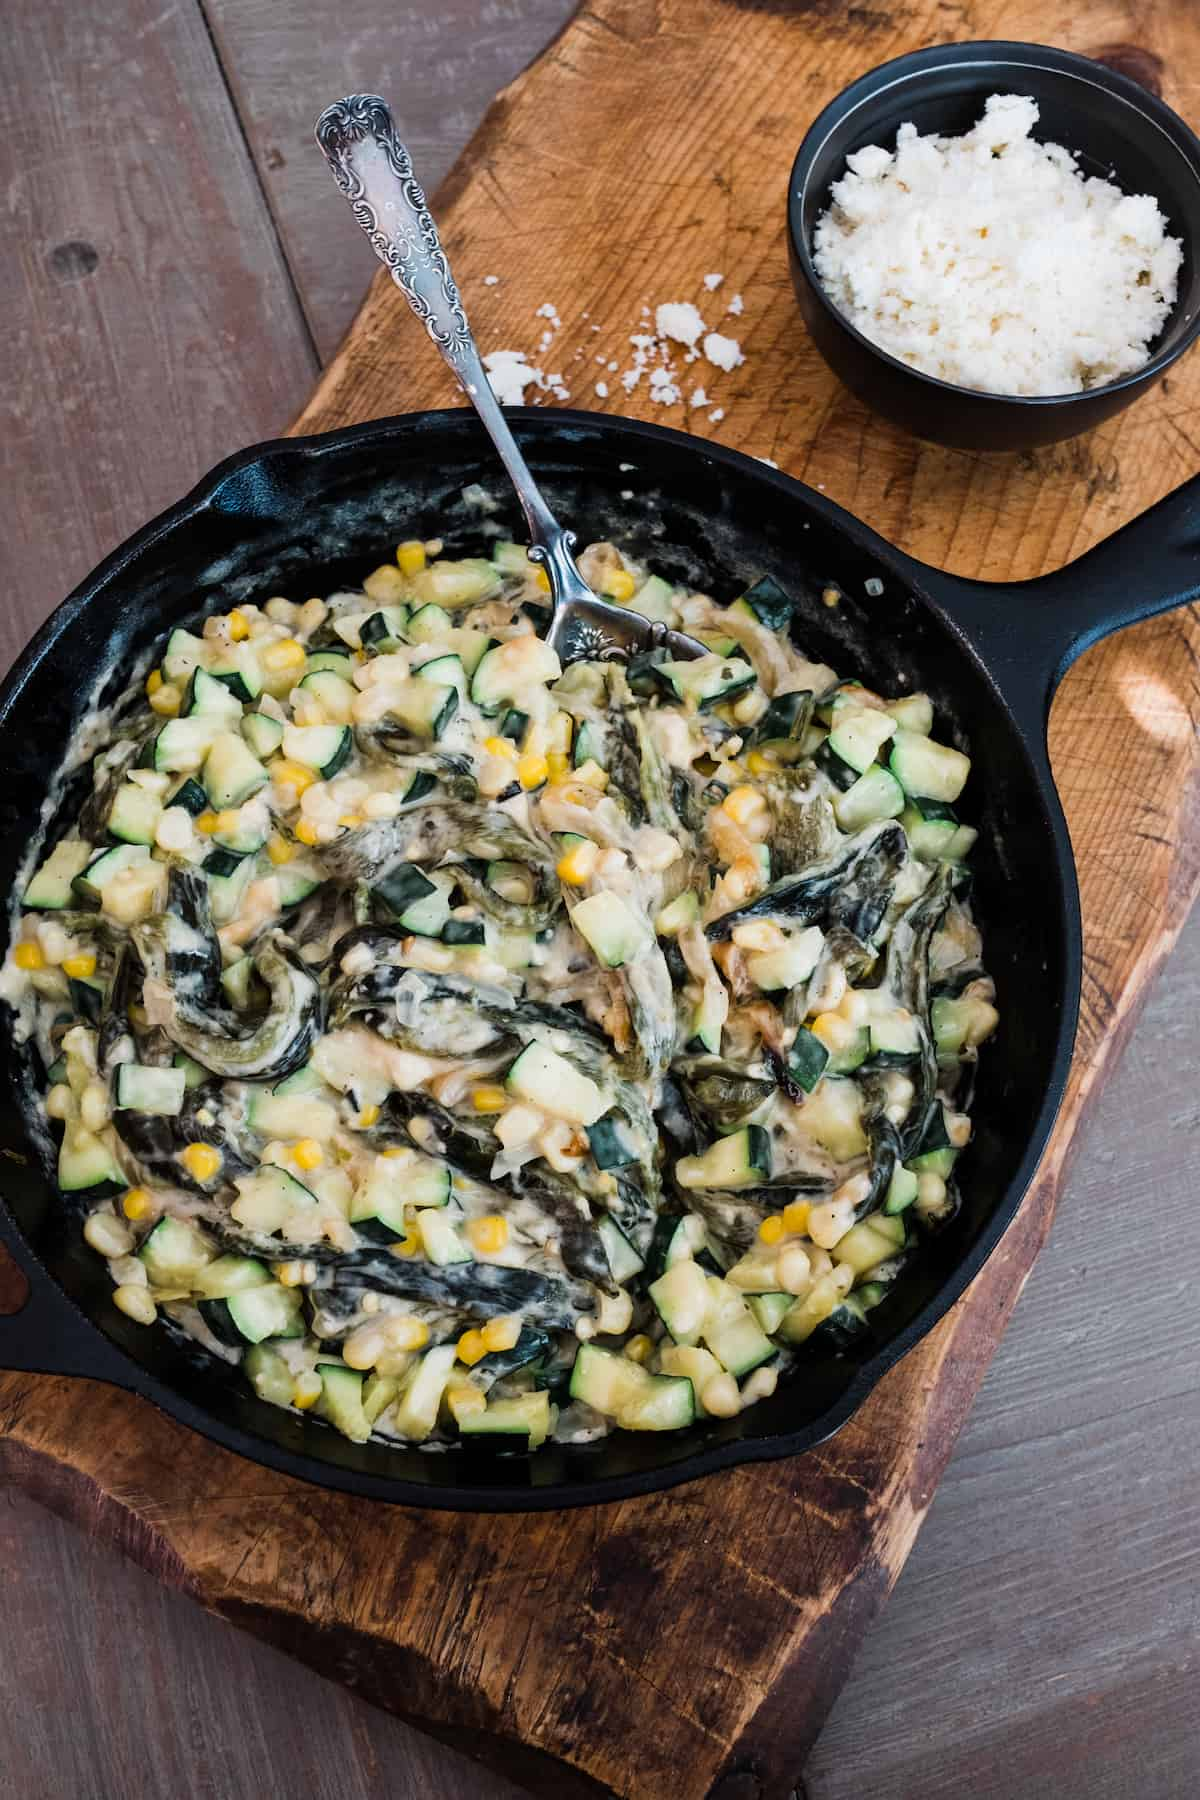 Creamy Zucchini, Corn, and Poblano Rajas in an iron skillet on a wooden board